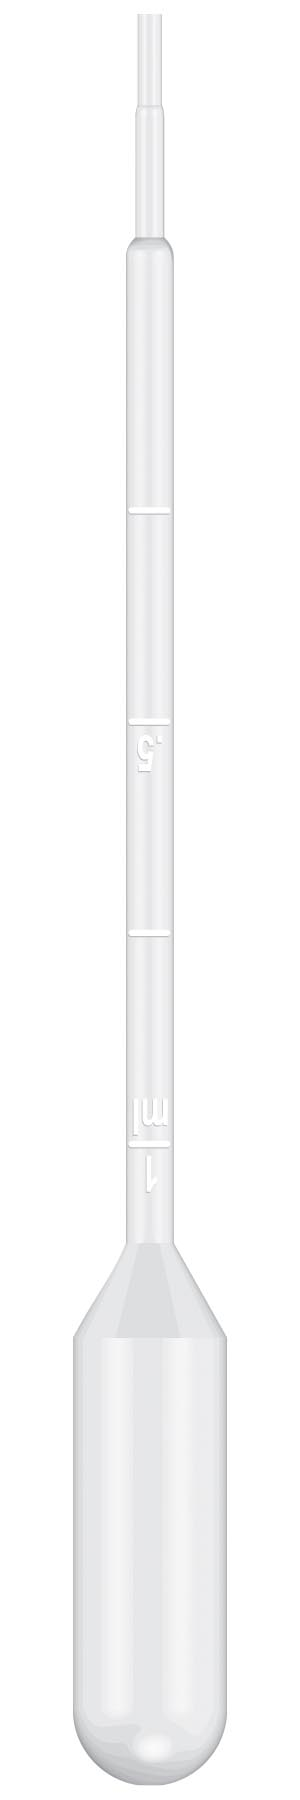 SIMPORT DROPETTE DISPOSABLE TRANSFER PIPETS : P200-5220S PK                                                                                                                                                                                  $61.75 Stocked